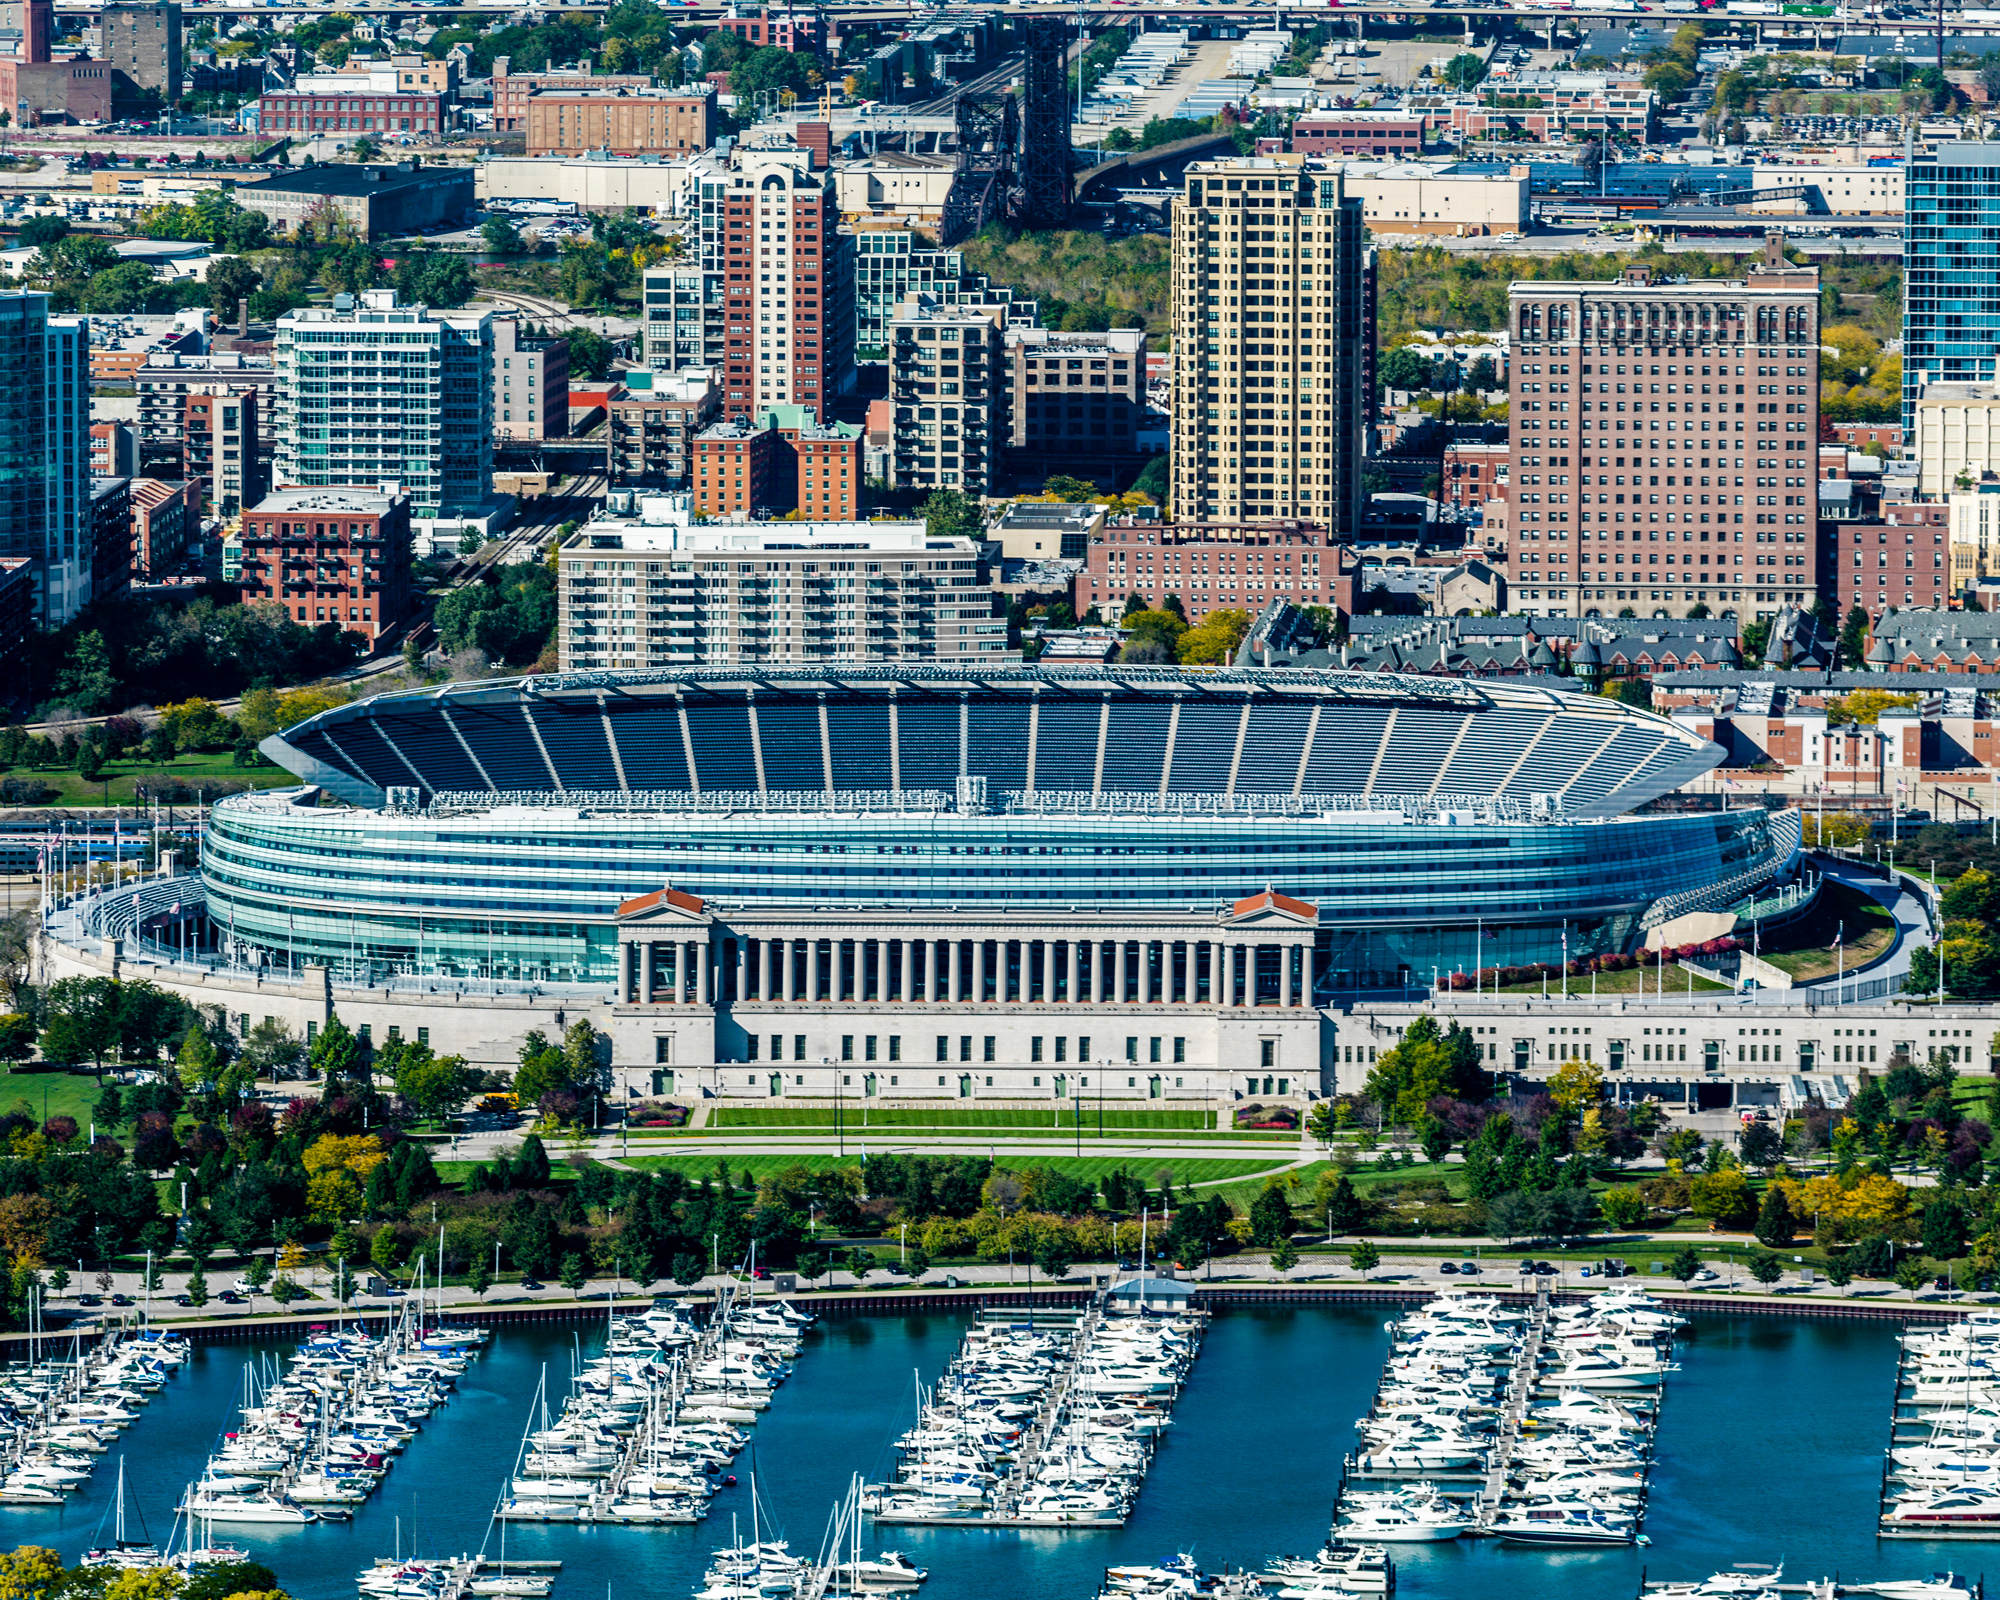 Soldier Field (c) Tigerhill Studio - All Rights Reserved